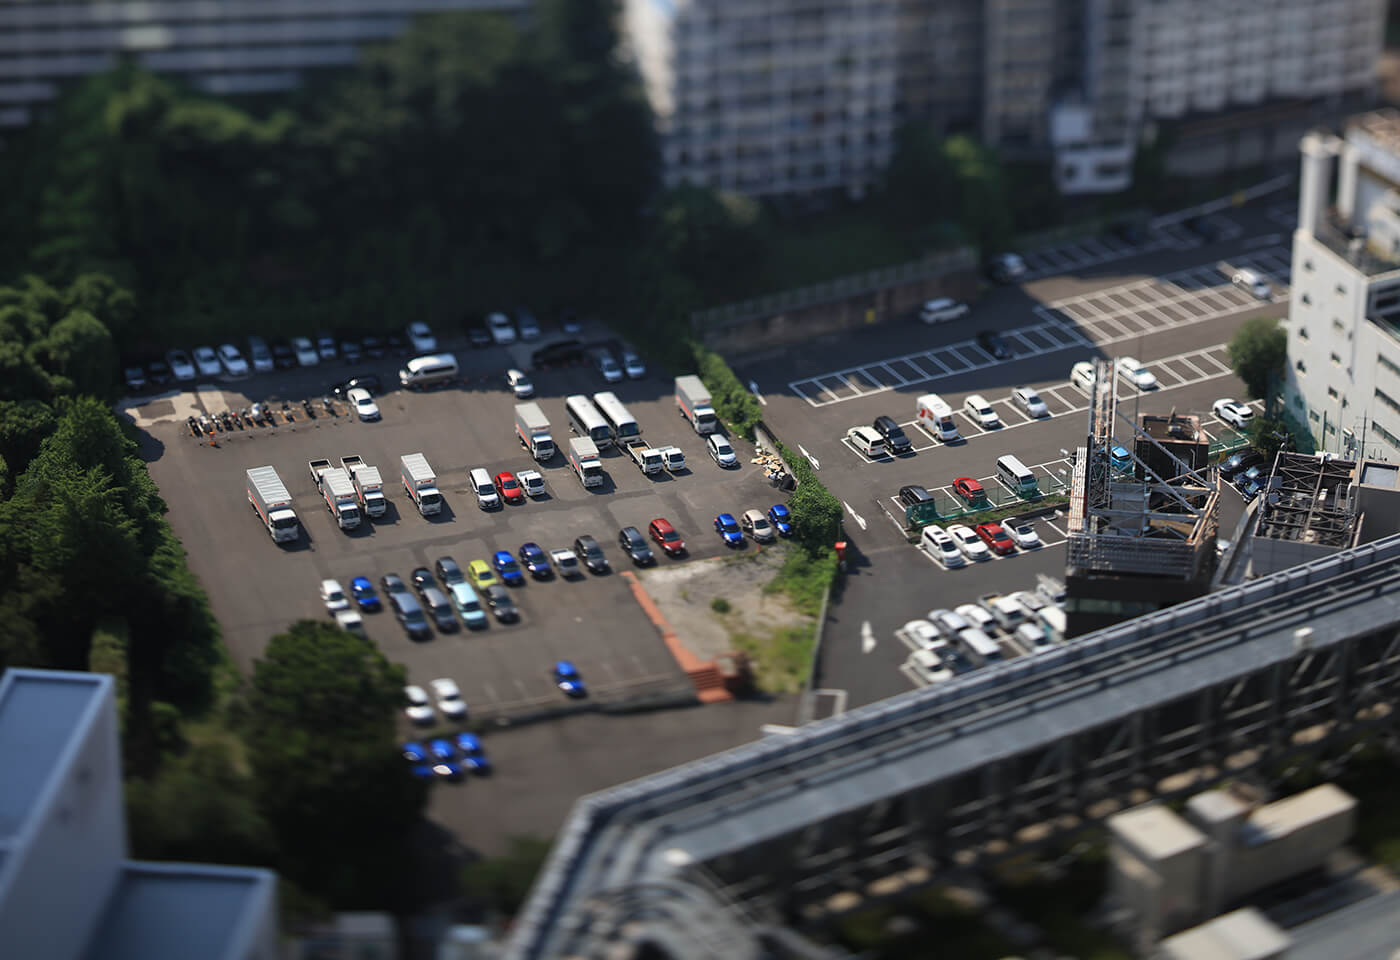 Carpark sample image taken with TSE 90mm f2 8L Macro Tilt Shift